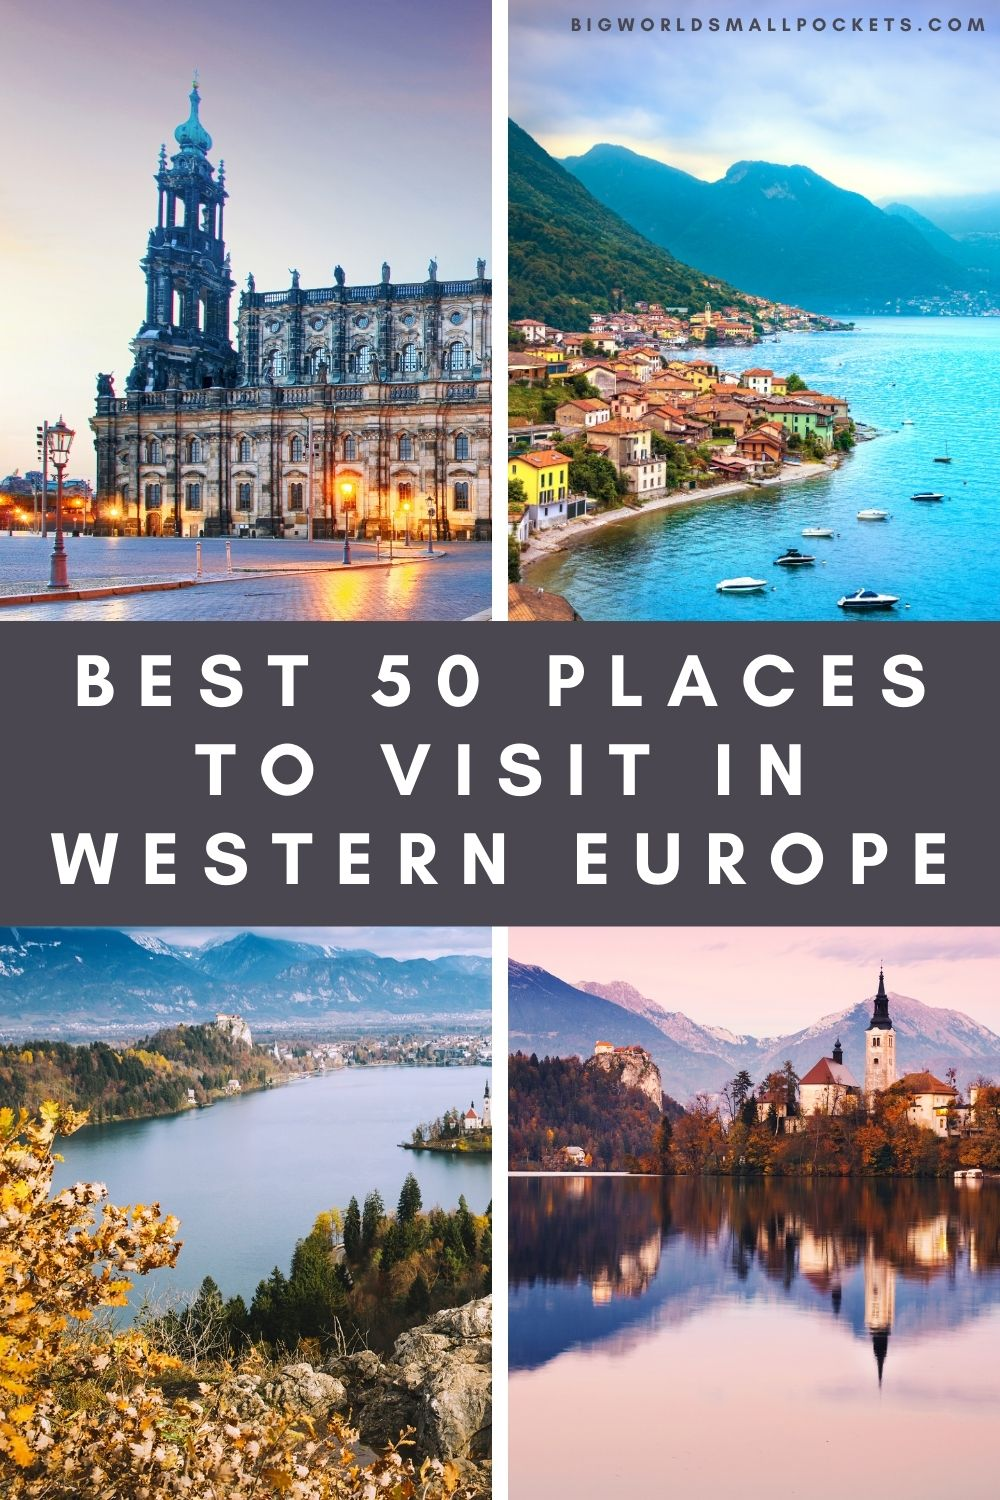 The Top 50 Places to Visit in Western Europe